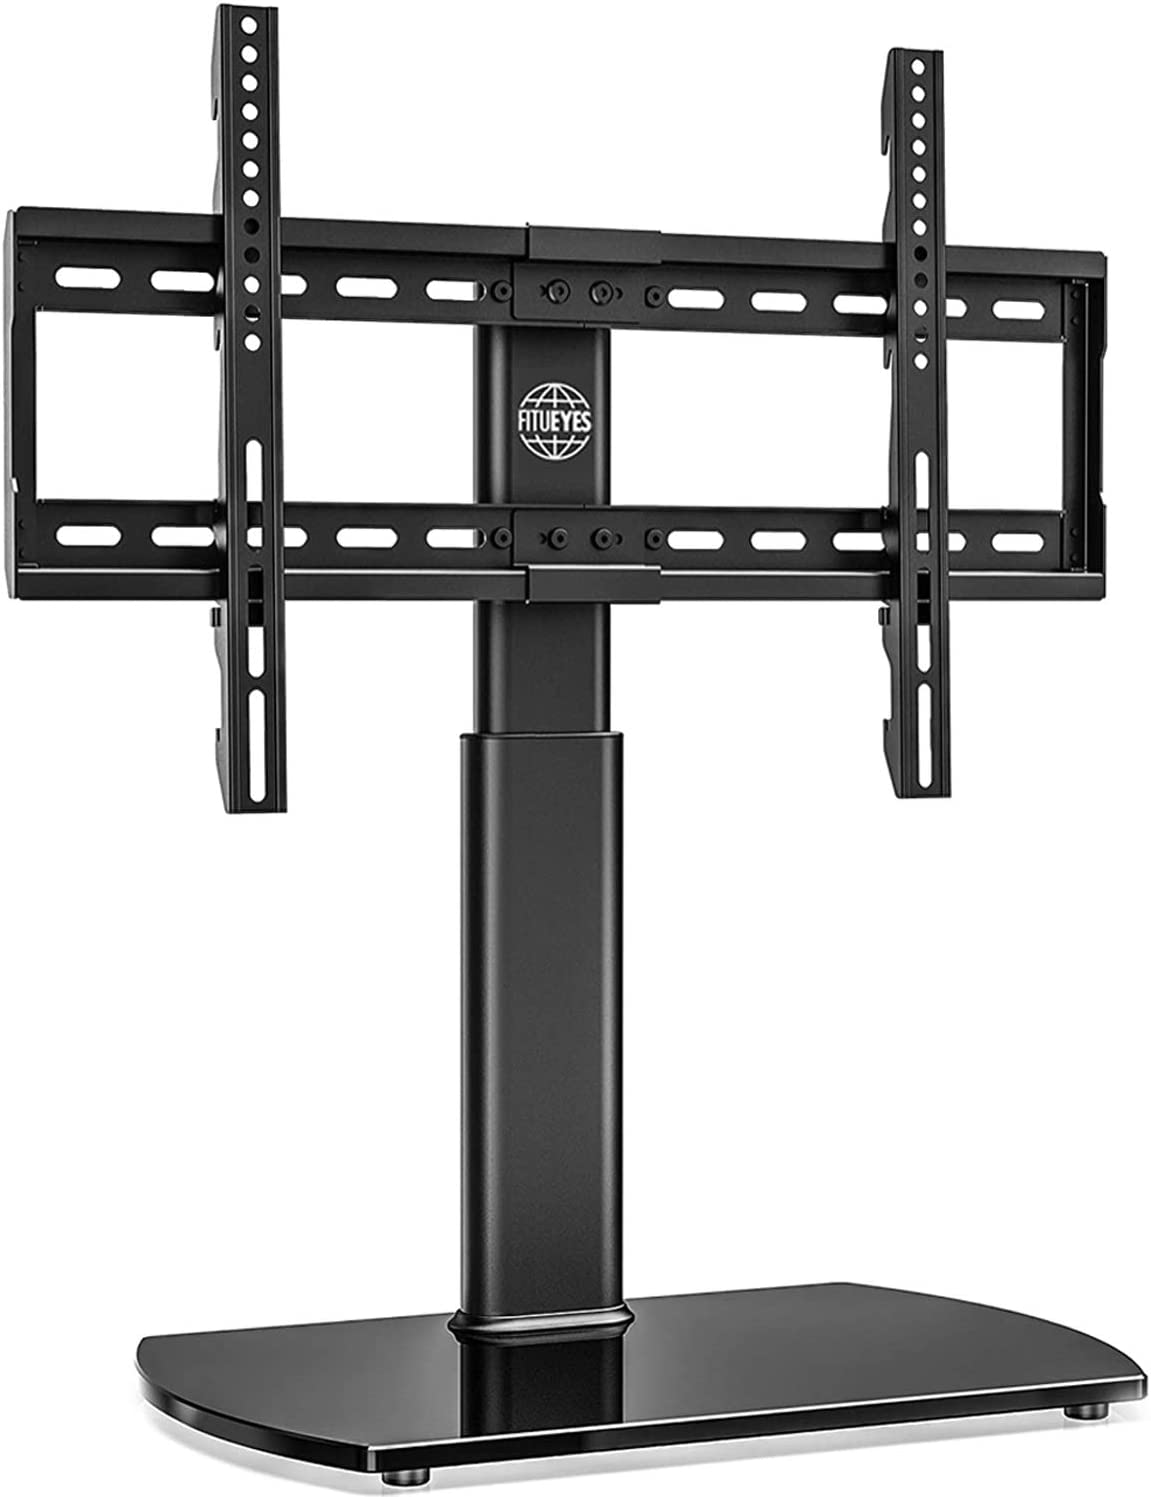 FITUEYES Universal TV Stand Base Swivel Tabletop TV Stand with Mount for 32 to 65 inch Flat Screen TV 80 Degree Swivel, 3 Level Height Adjustable,Tempered Glass Base,Holds up to110 lbs Screens: Electronics